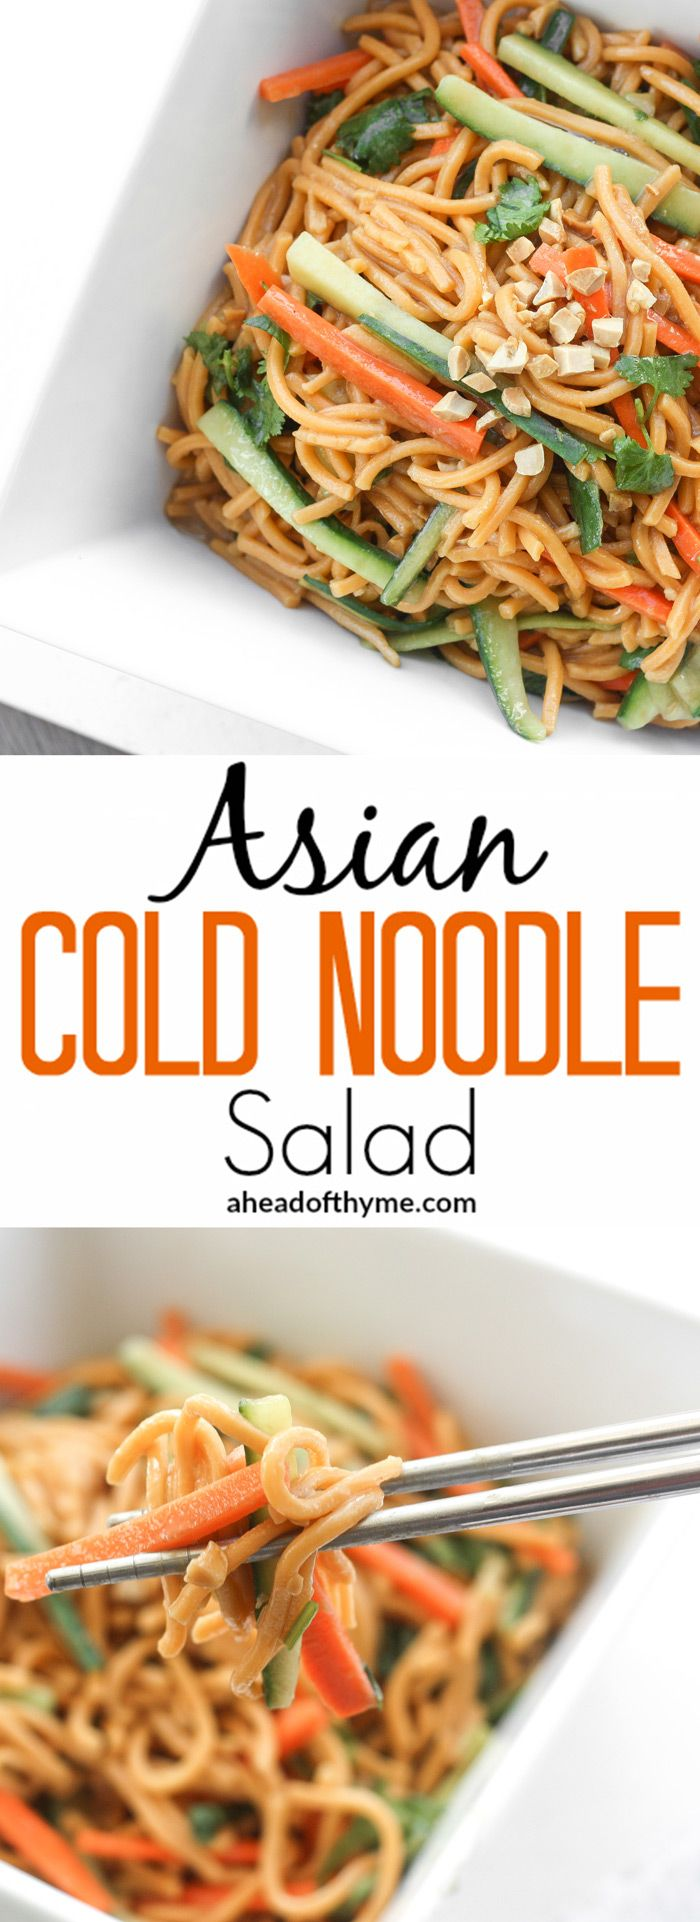 Asian Cold Noodle Salad: Nothing screams summer more than a crispy, crunchy, Asian cold noodle salad infused with a refreshing peanut, cilantro and lime dressing. | aheadofthyme.com via @aheadofthyme